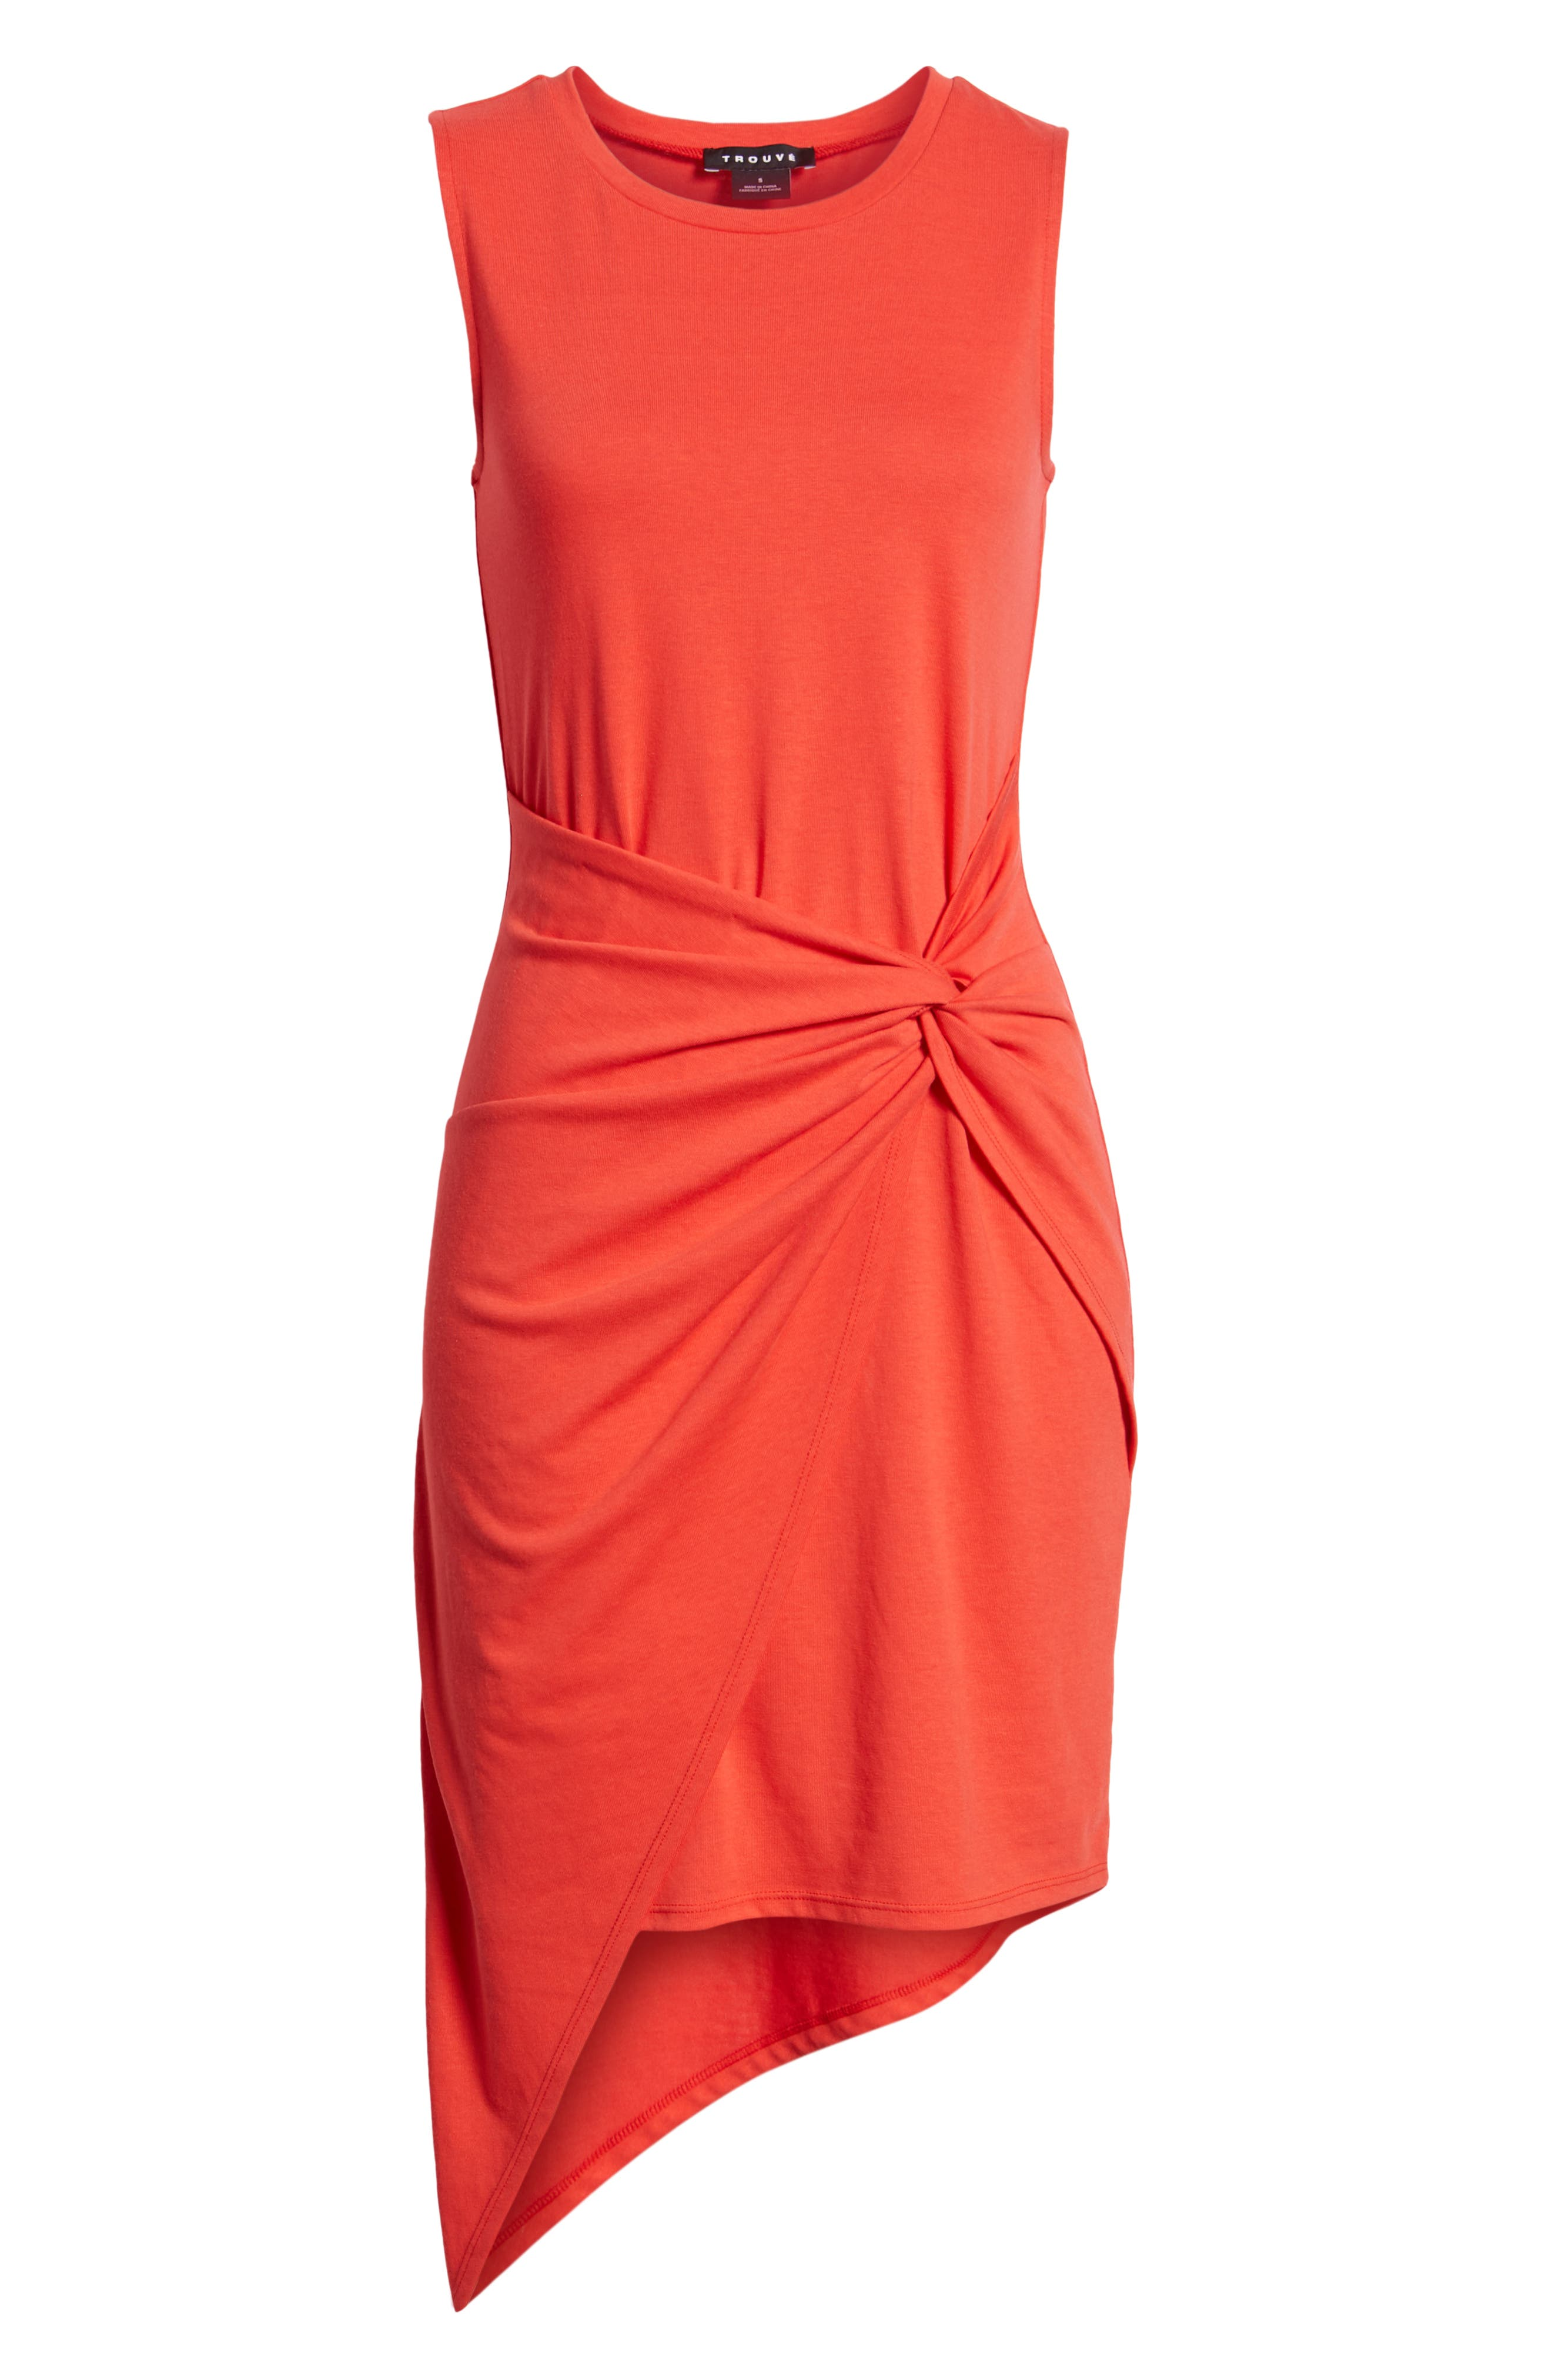 Twist Front Dress,                             Alternate thumbnail 7, color,                             Red Poppy